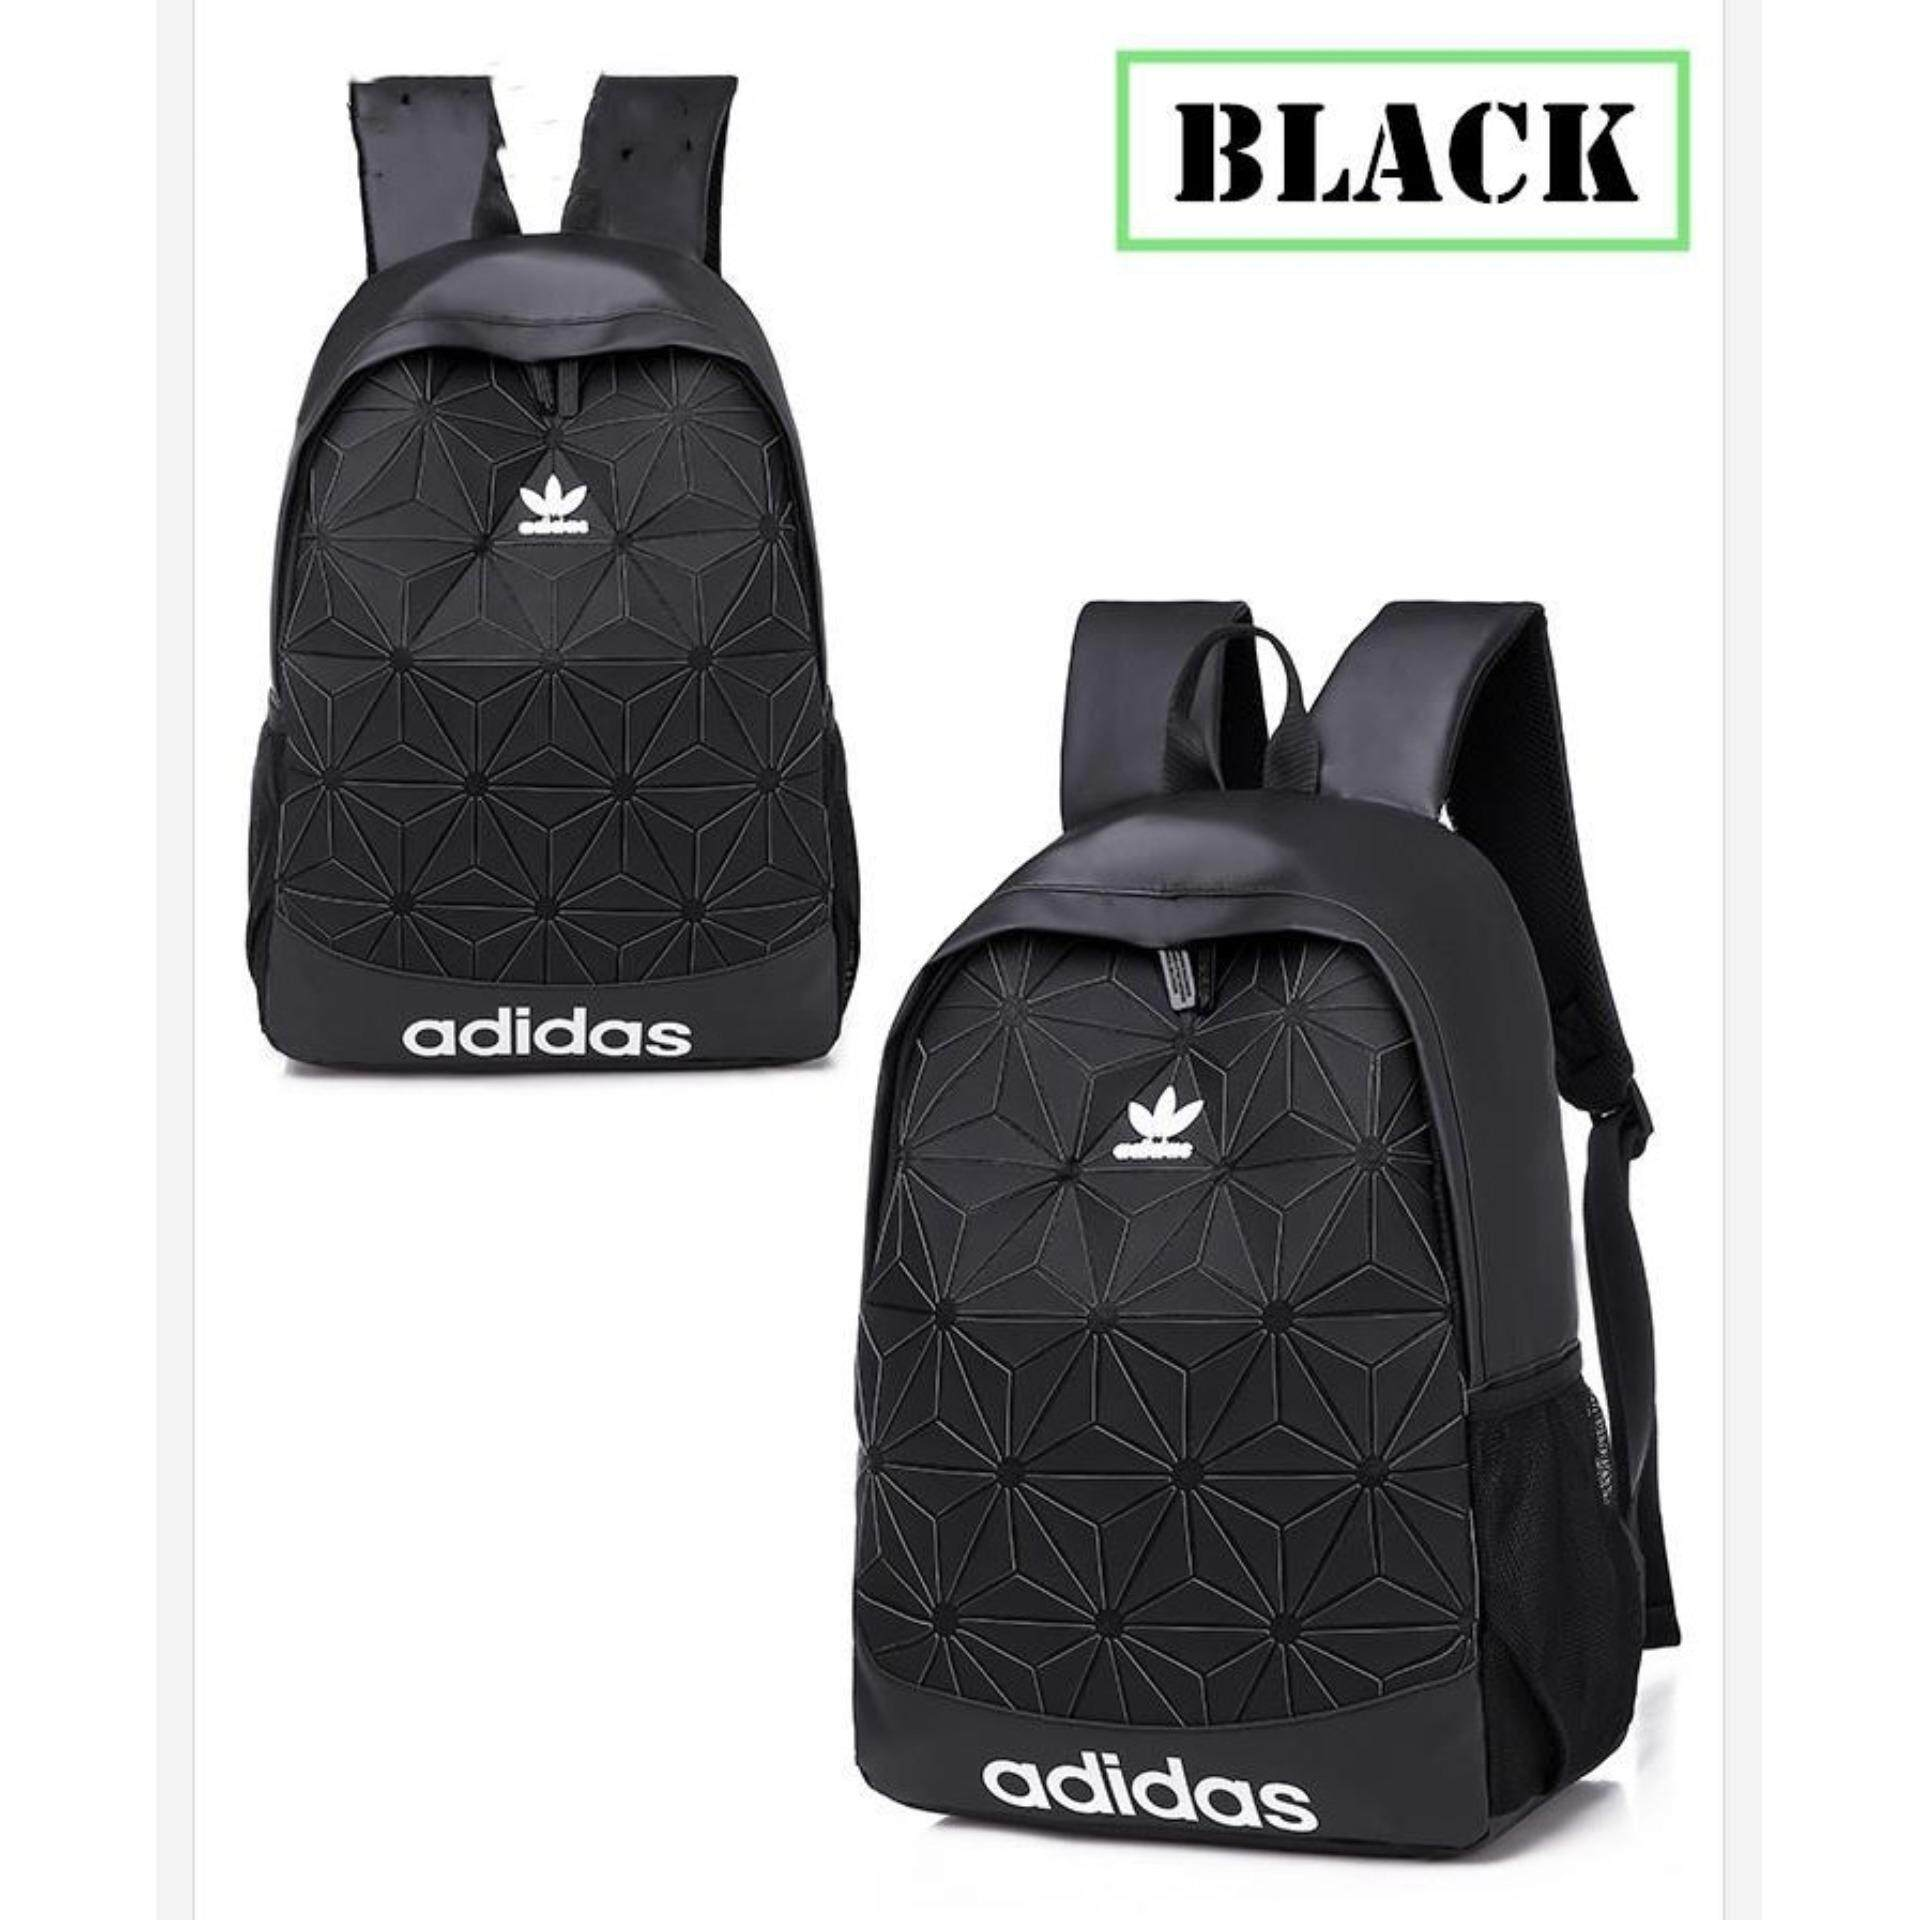 Promotion ! A_di_das Backpack 3D Issey Miyake Laptop Travel Outdoor Bags School Student Bag